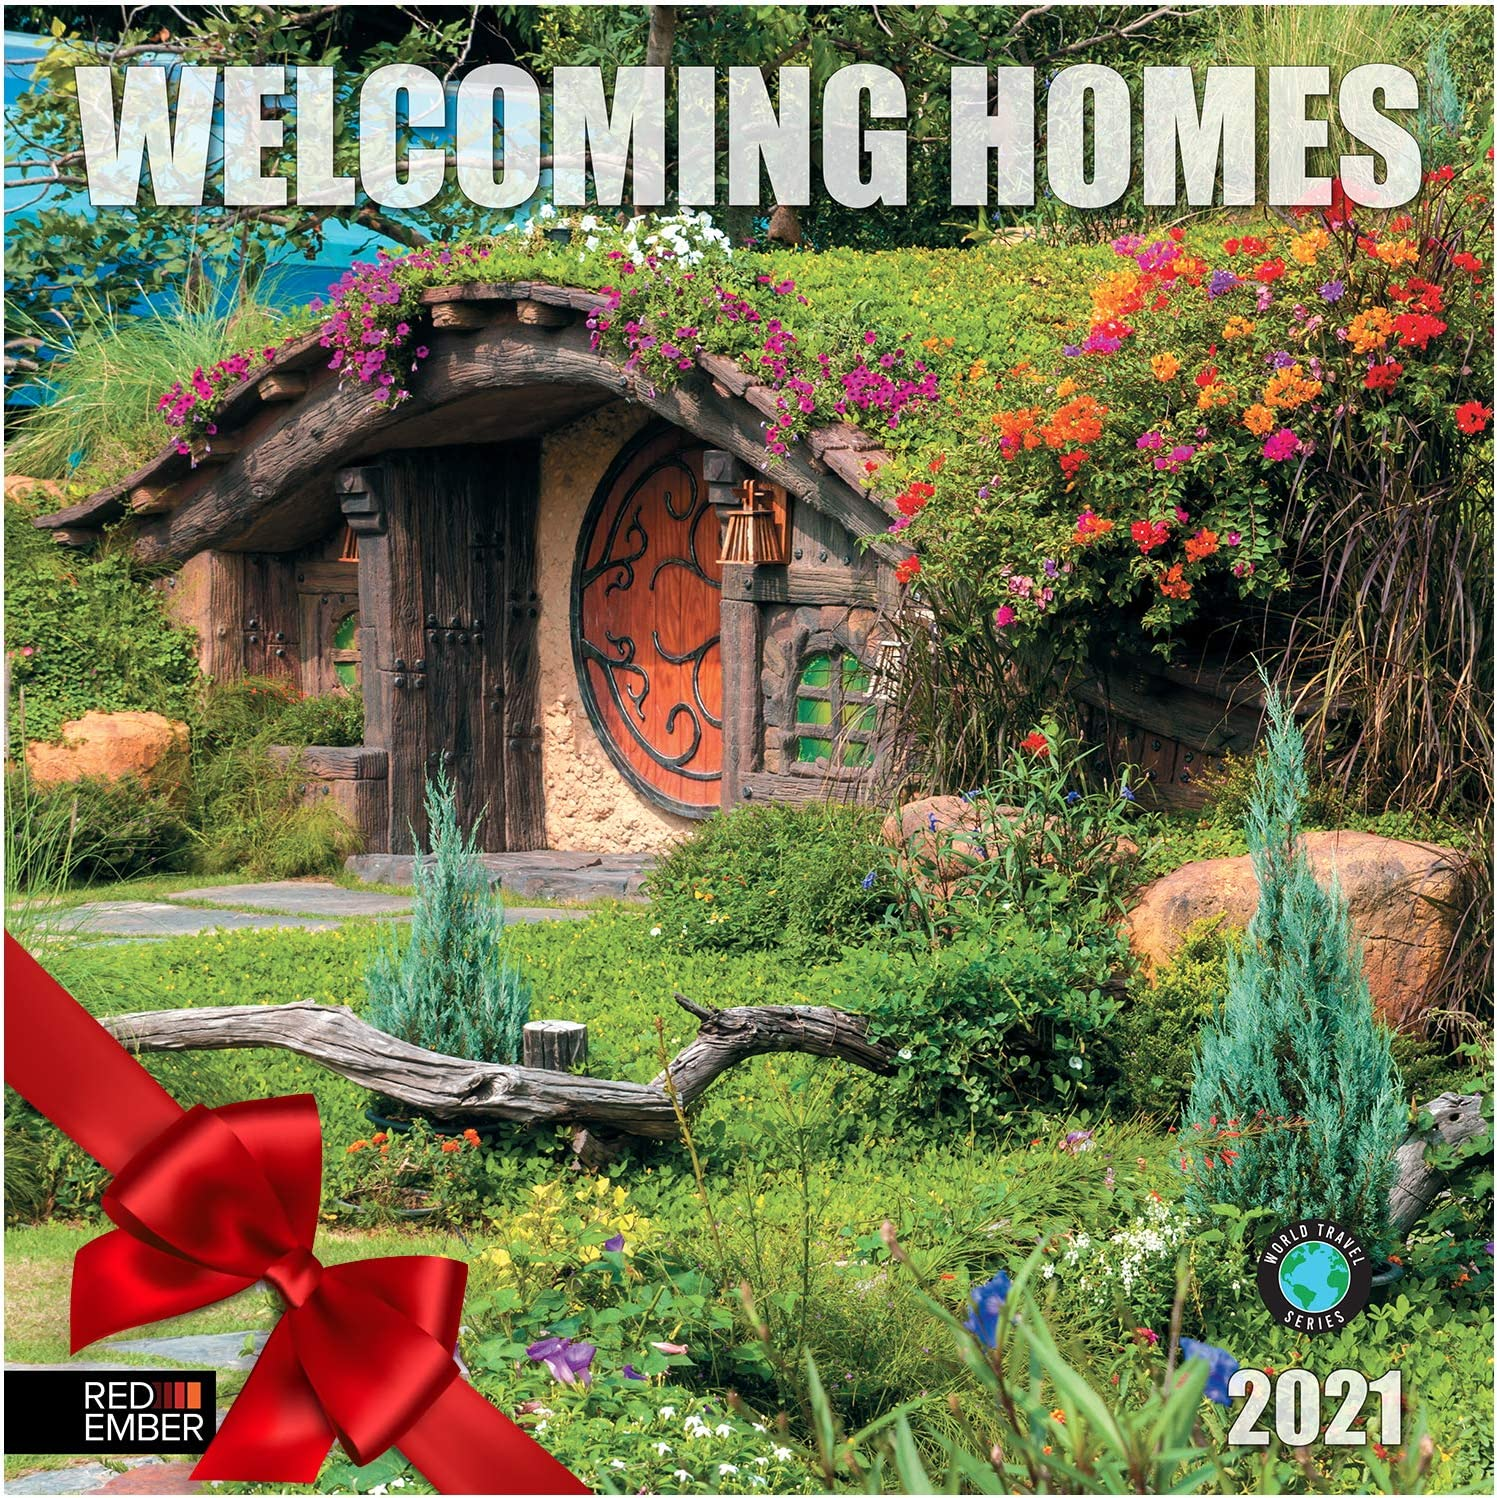 Welcoming Homes - 2021 Hangable Wall Calendars by Red Ember Press - 12